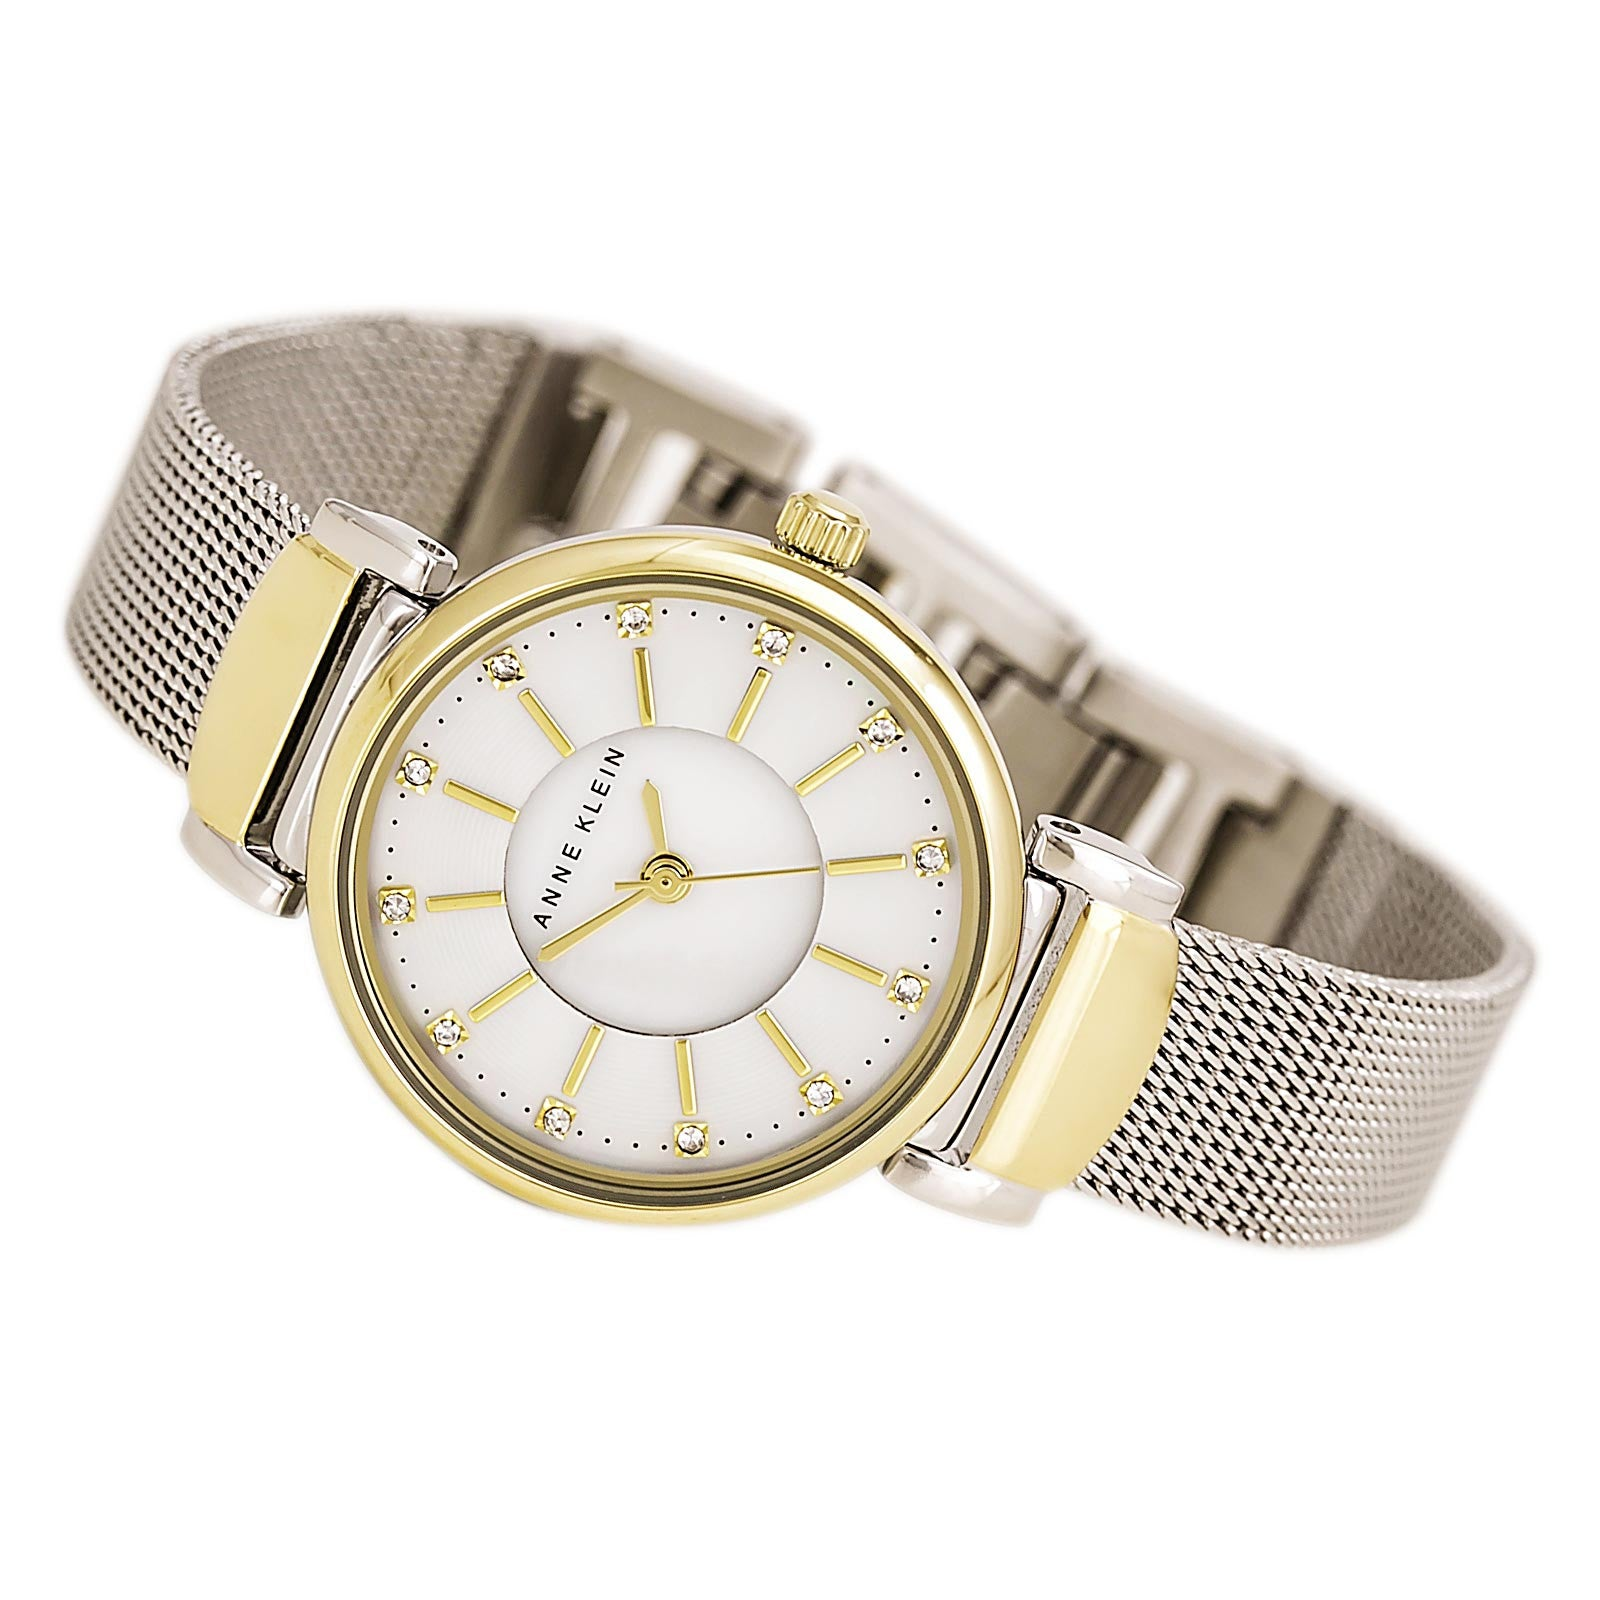 Anne Klein 2203MPTT Women's Crystals Accented White MOP Dial Two Tone Steel Watch